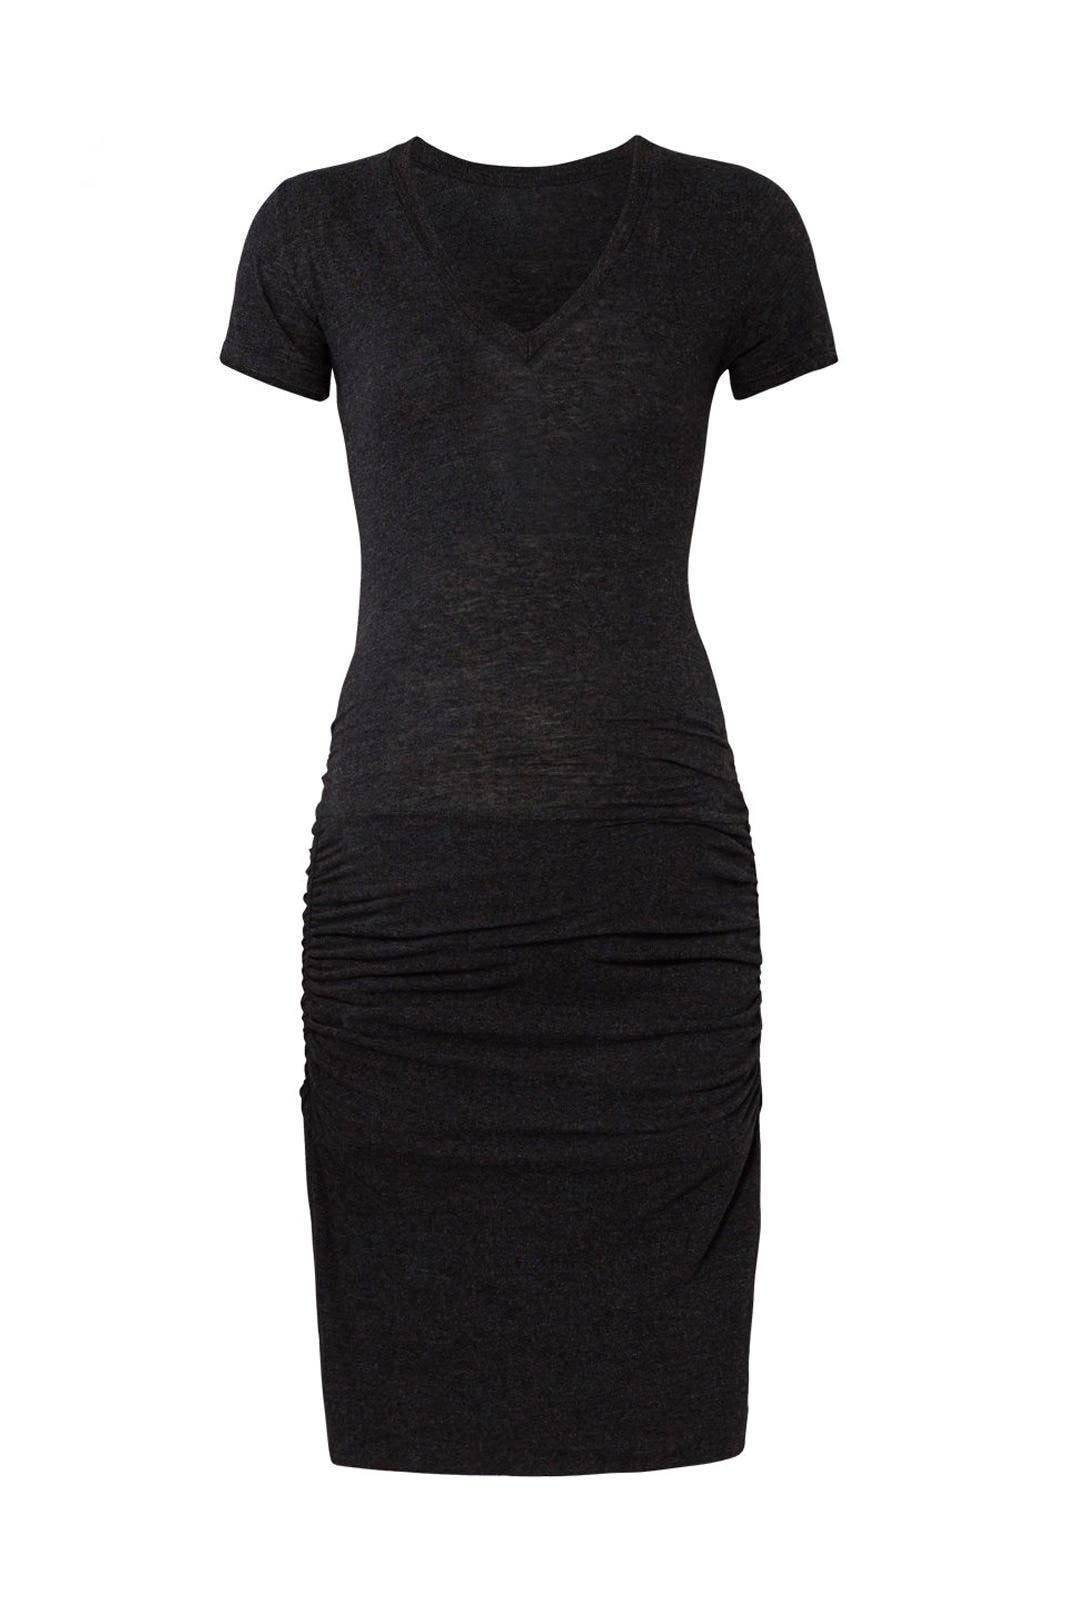 Designer maternity dresses apparel i rent the runway black short sleeve maternity dress by monrow ombrellifo Choice Image